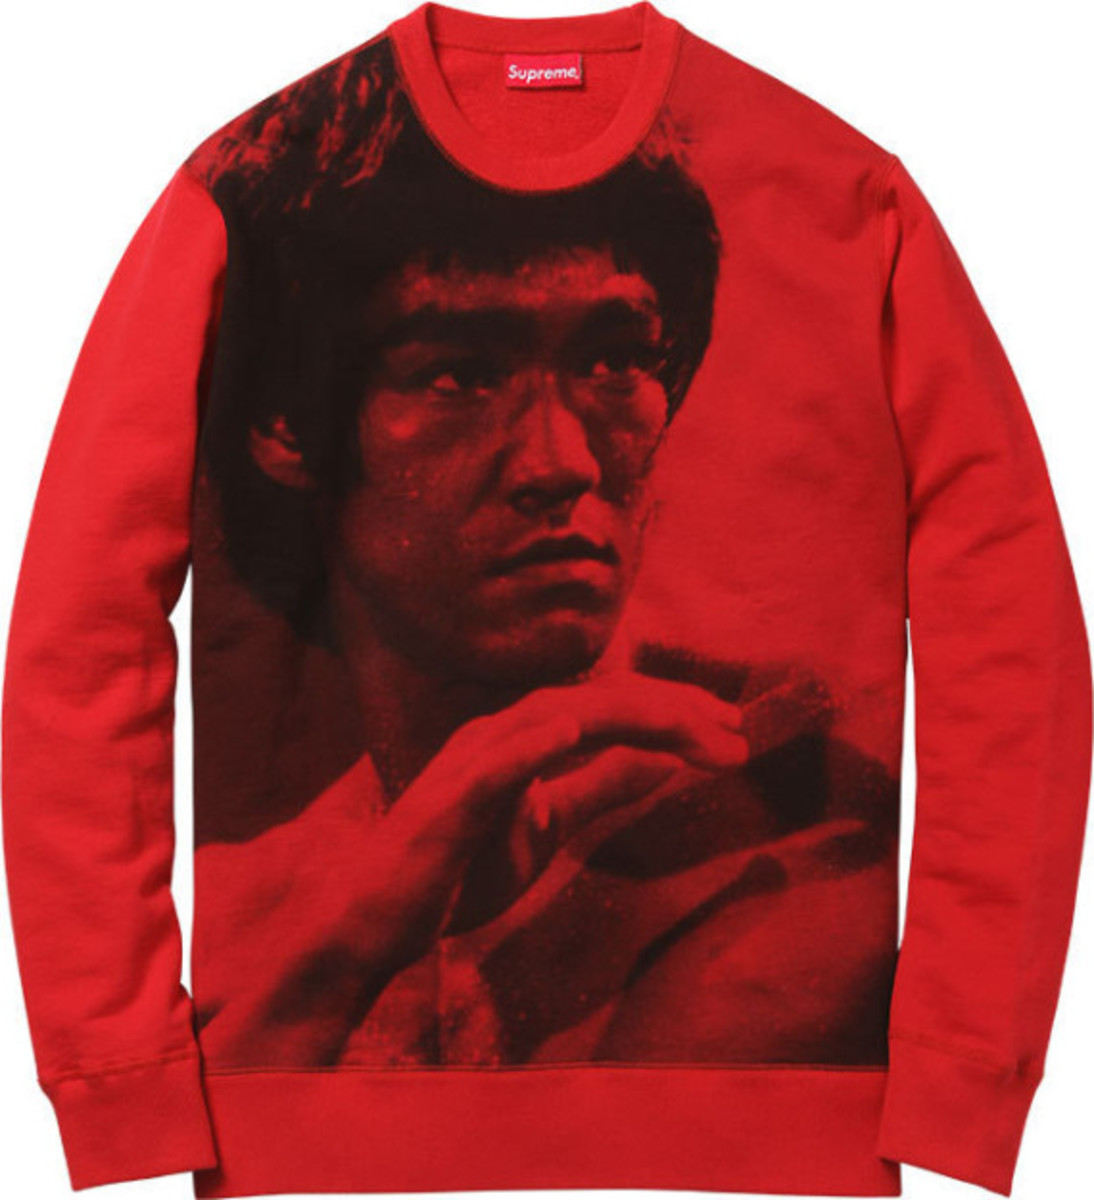 bruce-lee-x-supreme-capsule-collection-06